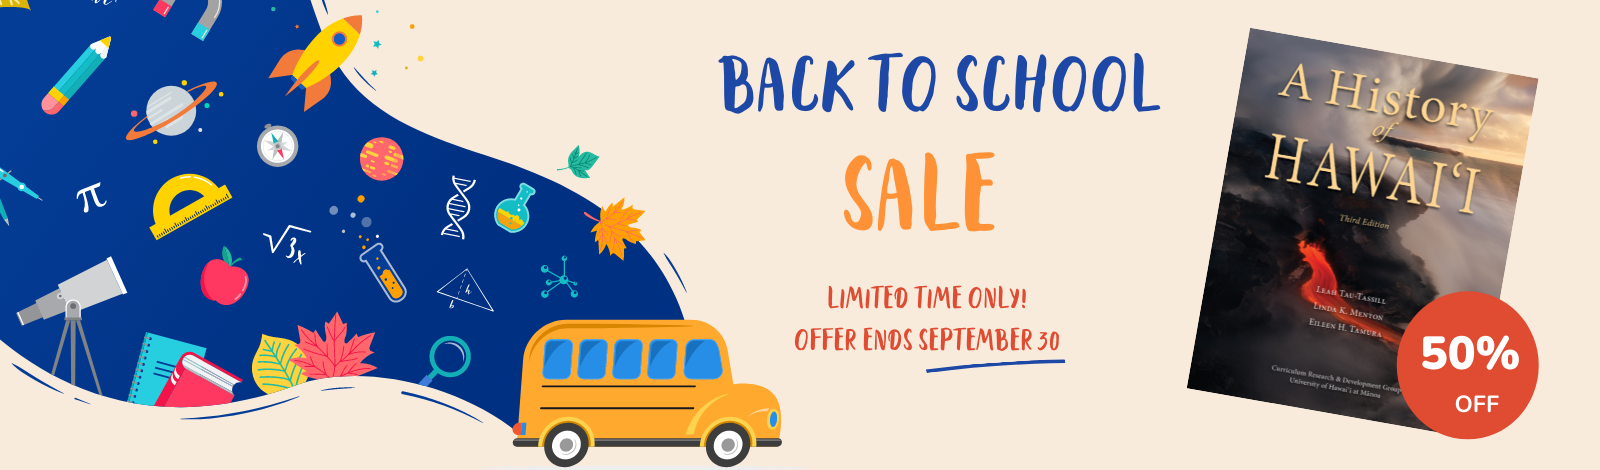 back to school sale graphic